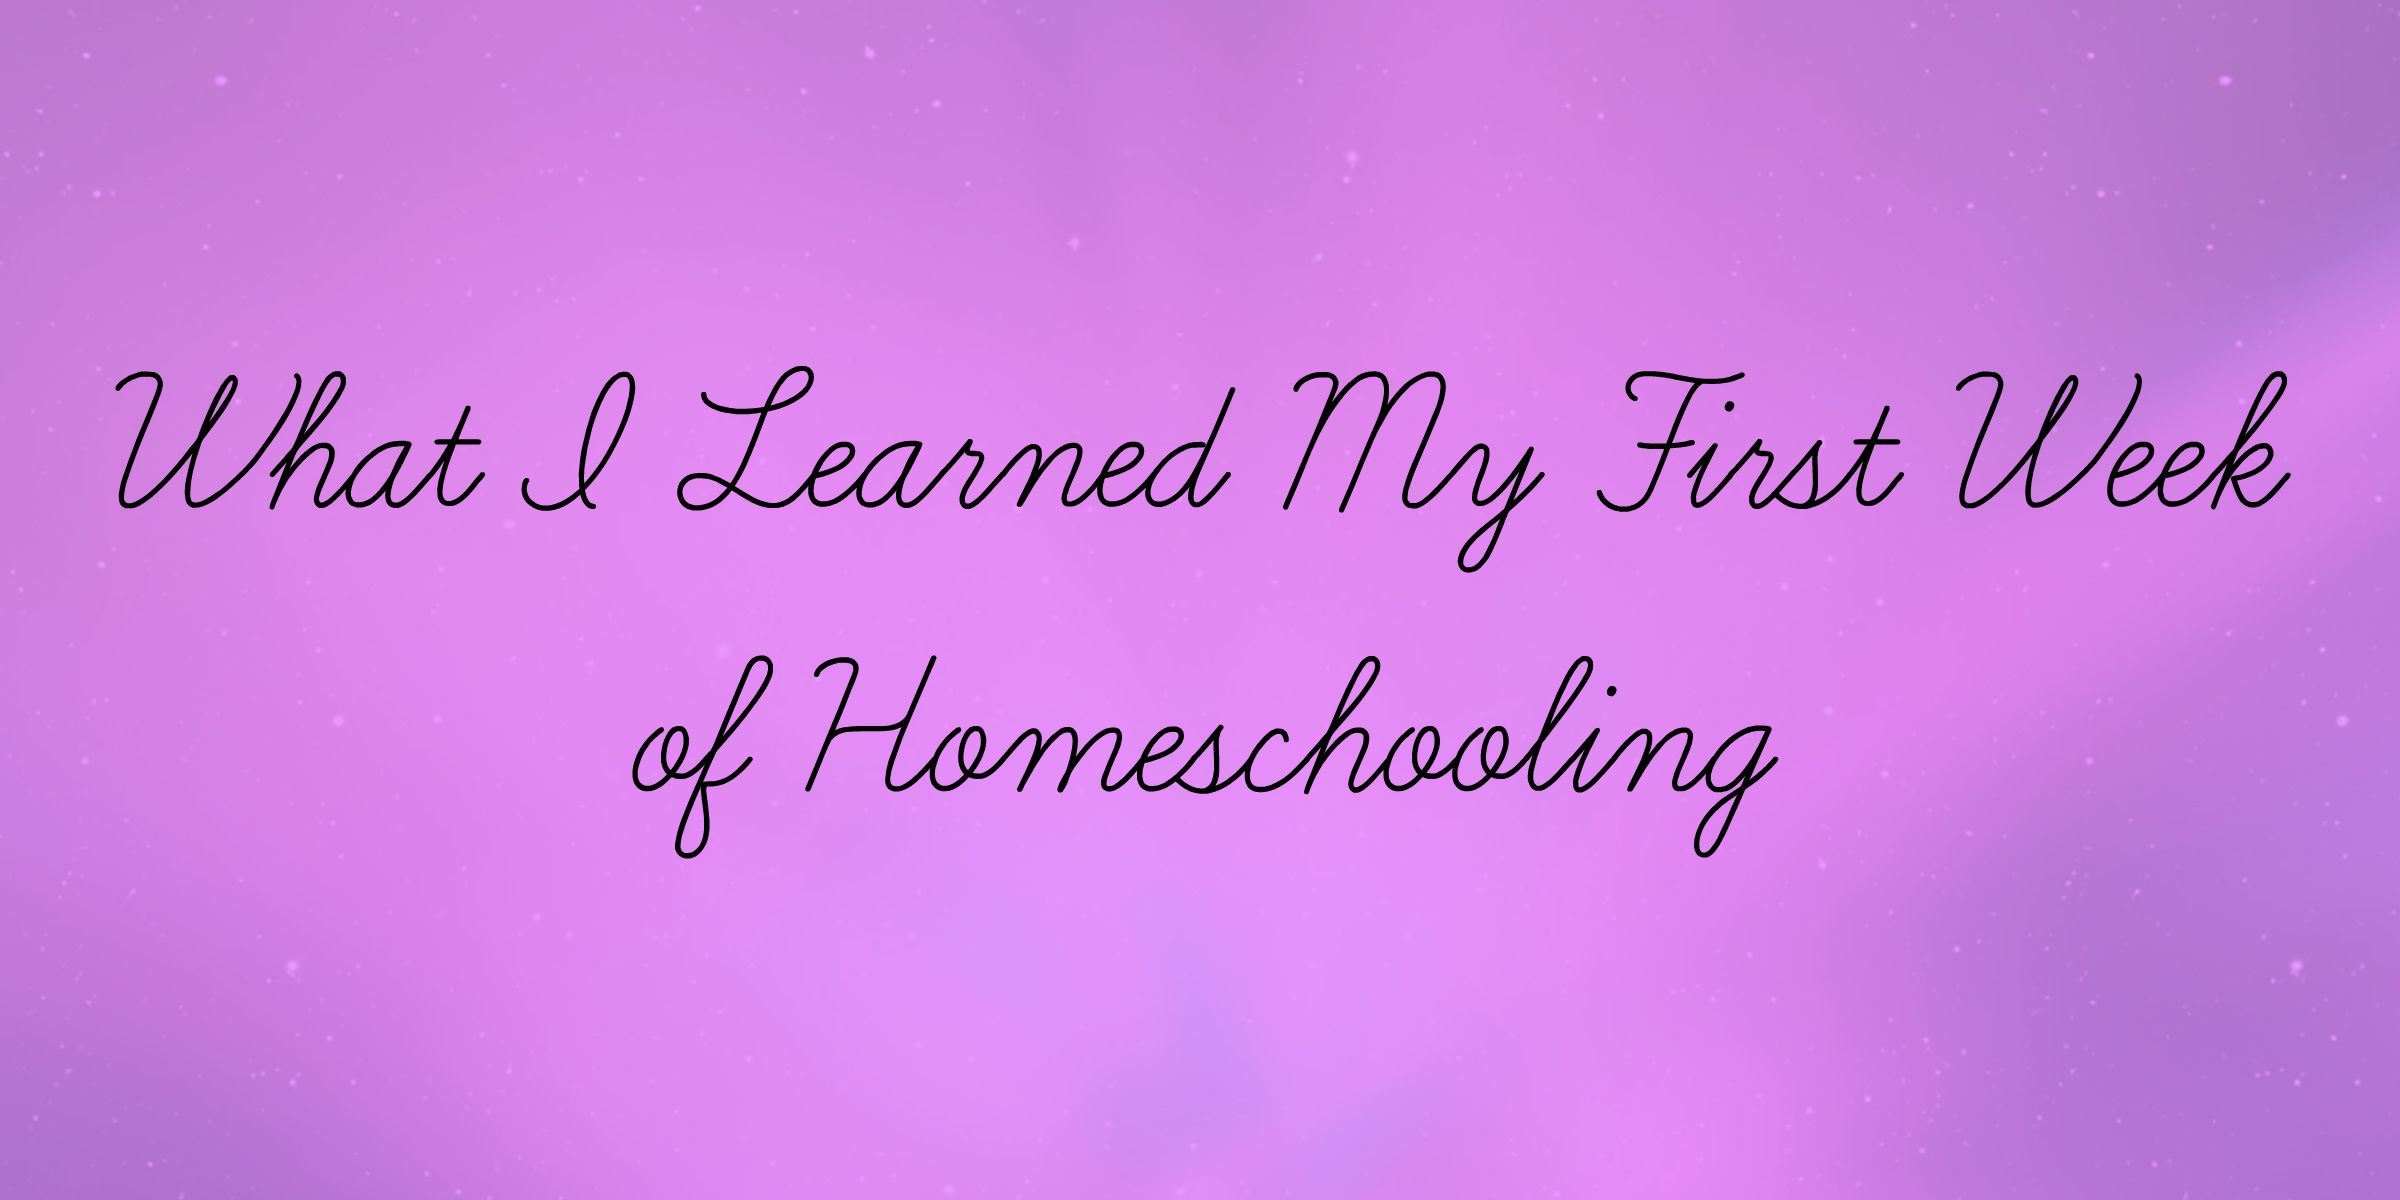 What I Learned My First Week of Homeschooling